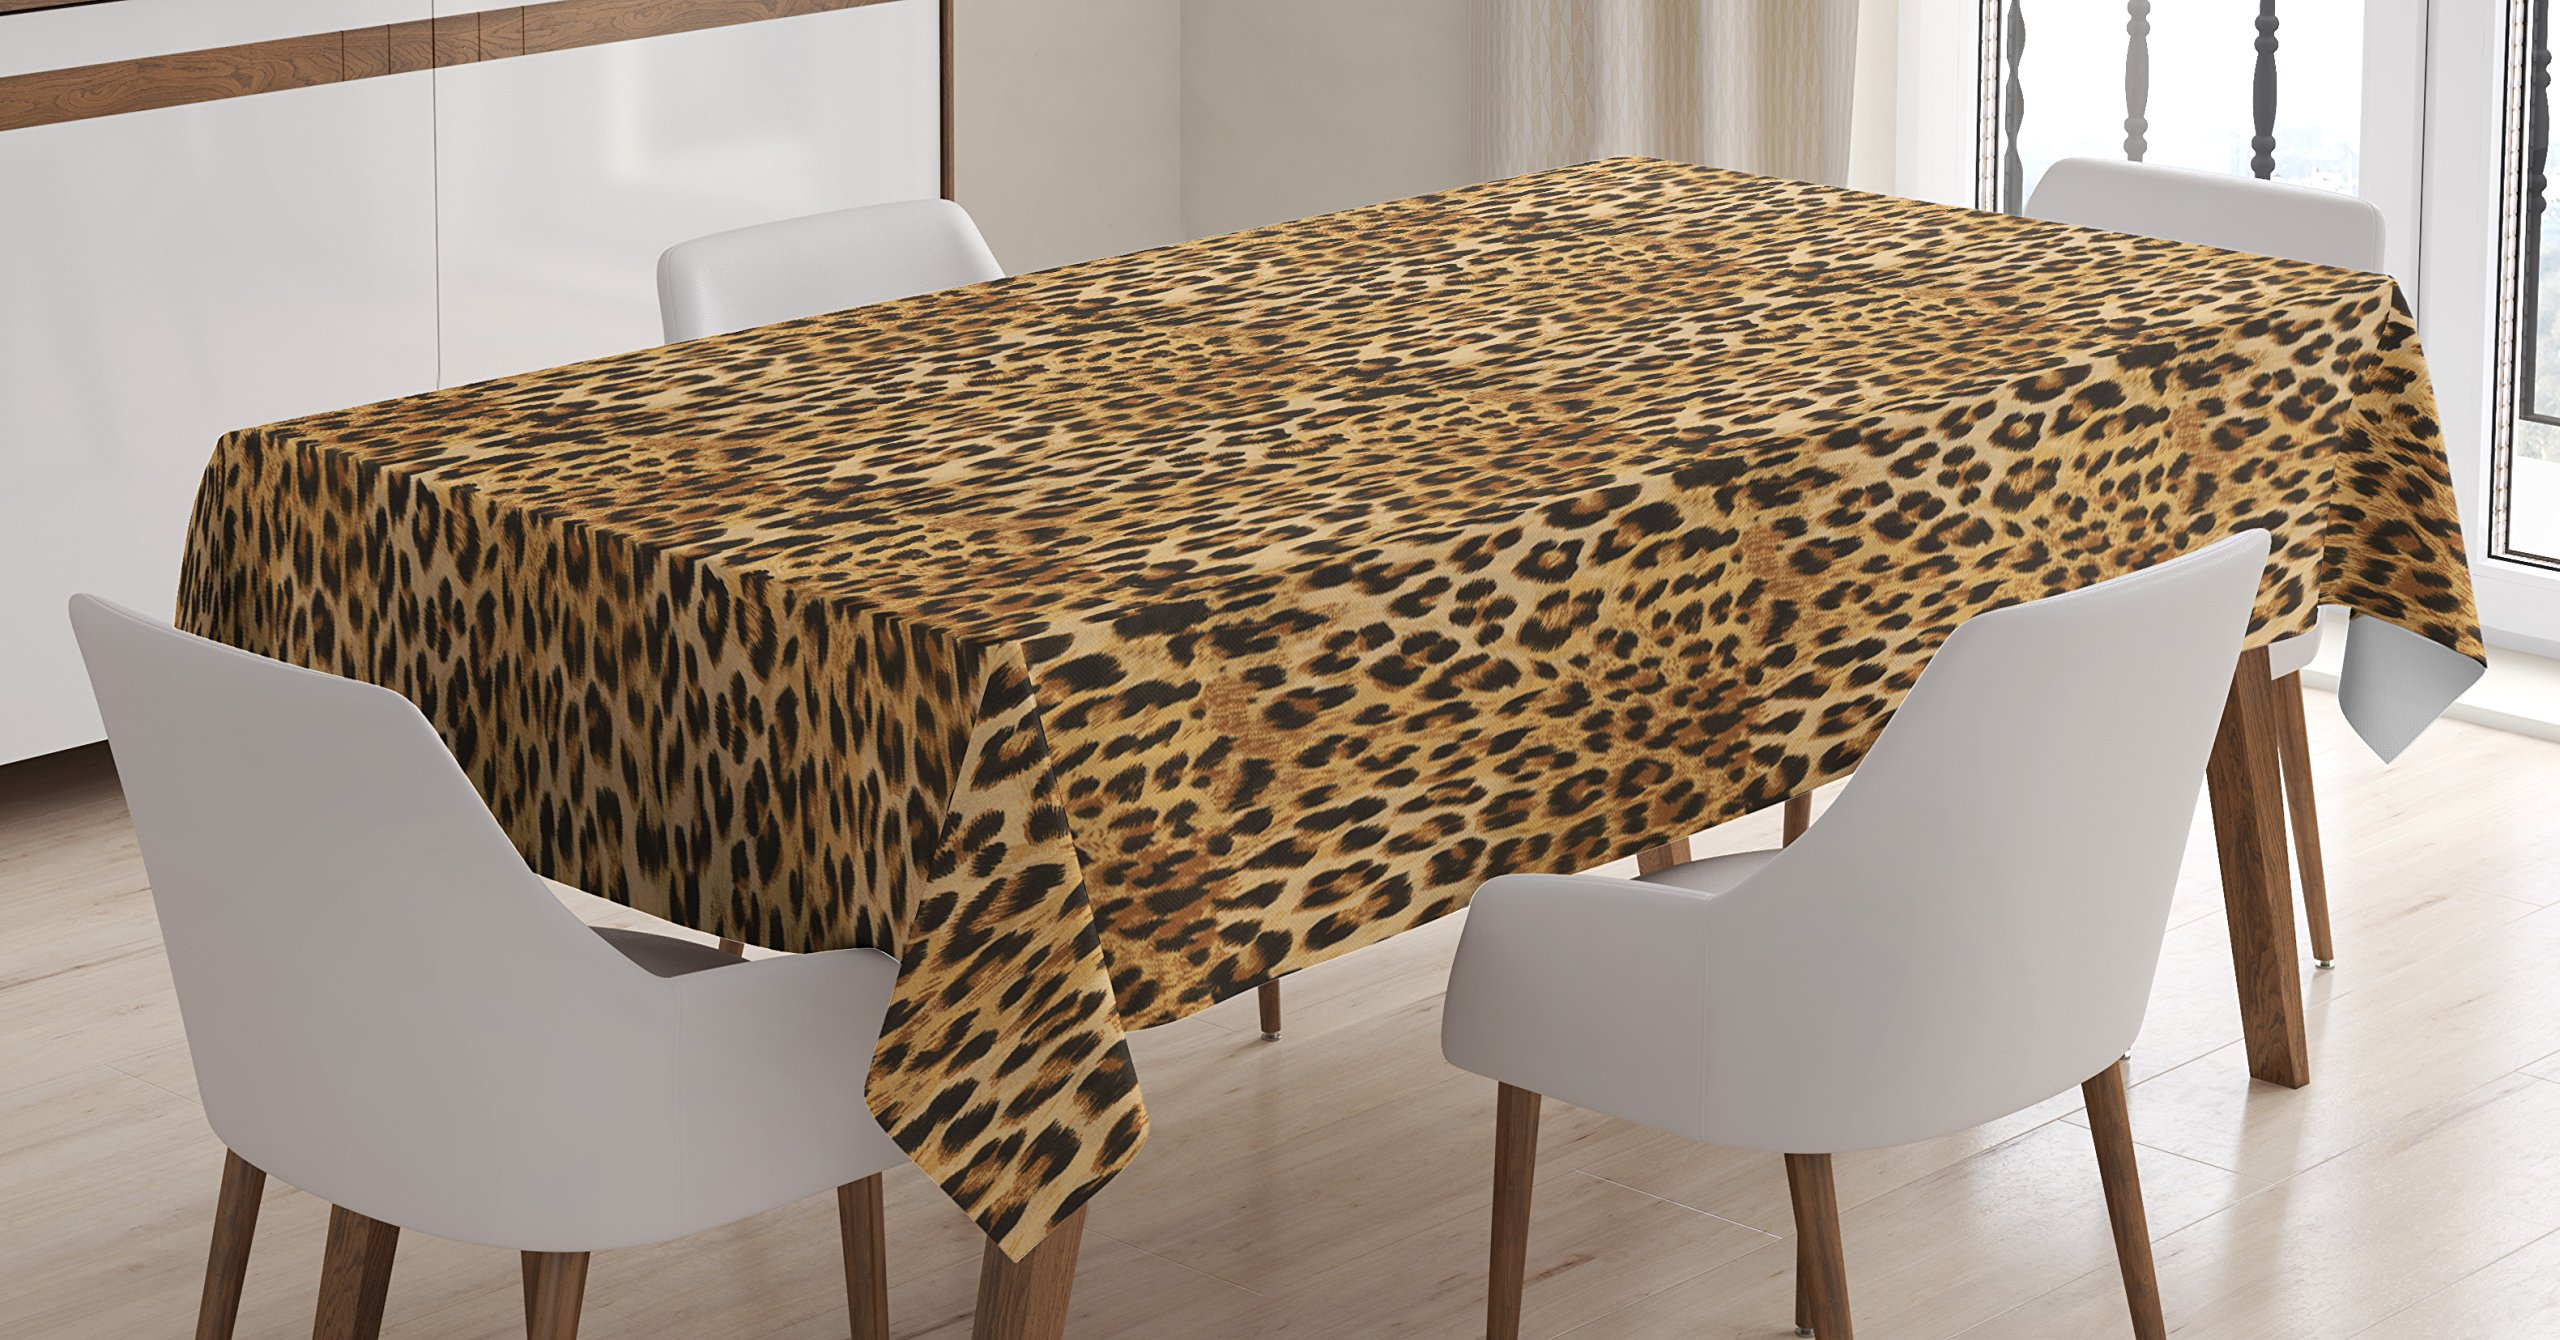 Ambesonne Brown Tablecloth, Leopard Print Animal Skin Digital Printed Wild African Safari Themed Spotted Pattern, Dining Room Kitchen Rectangular Table Cover, 60 X 90 inches, Brown